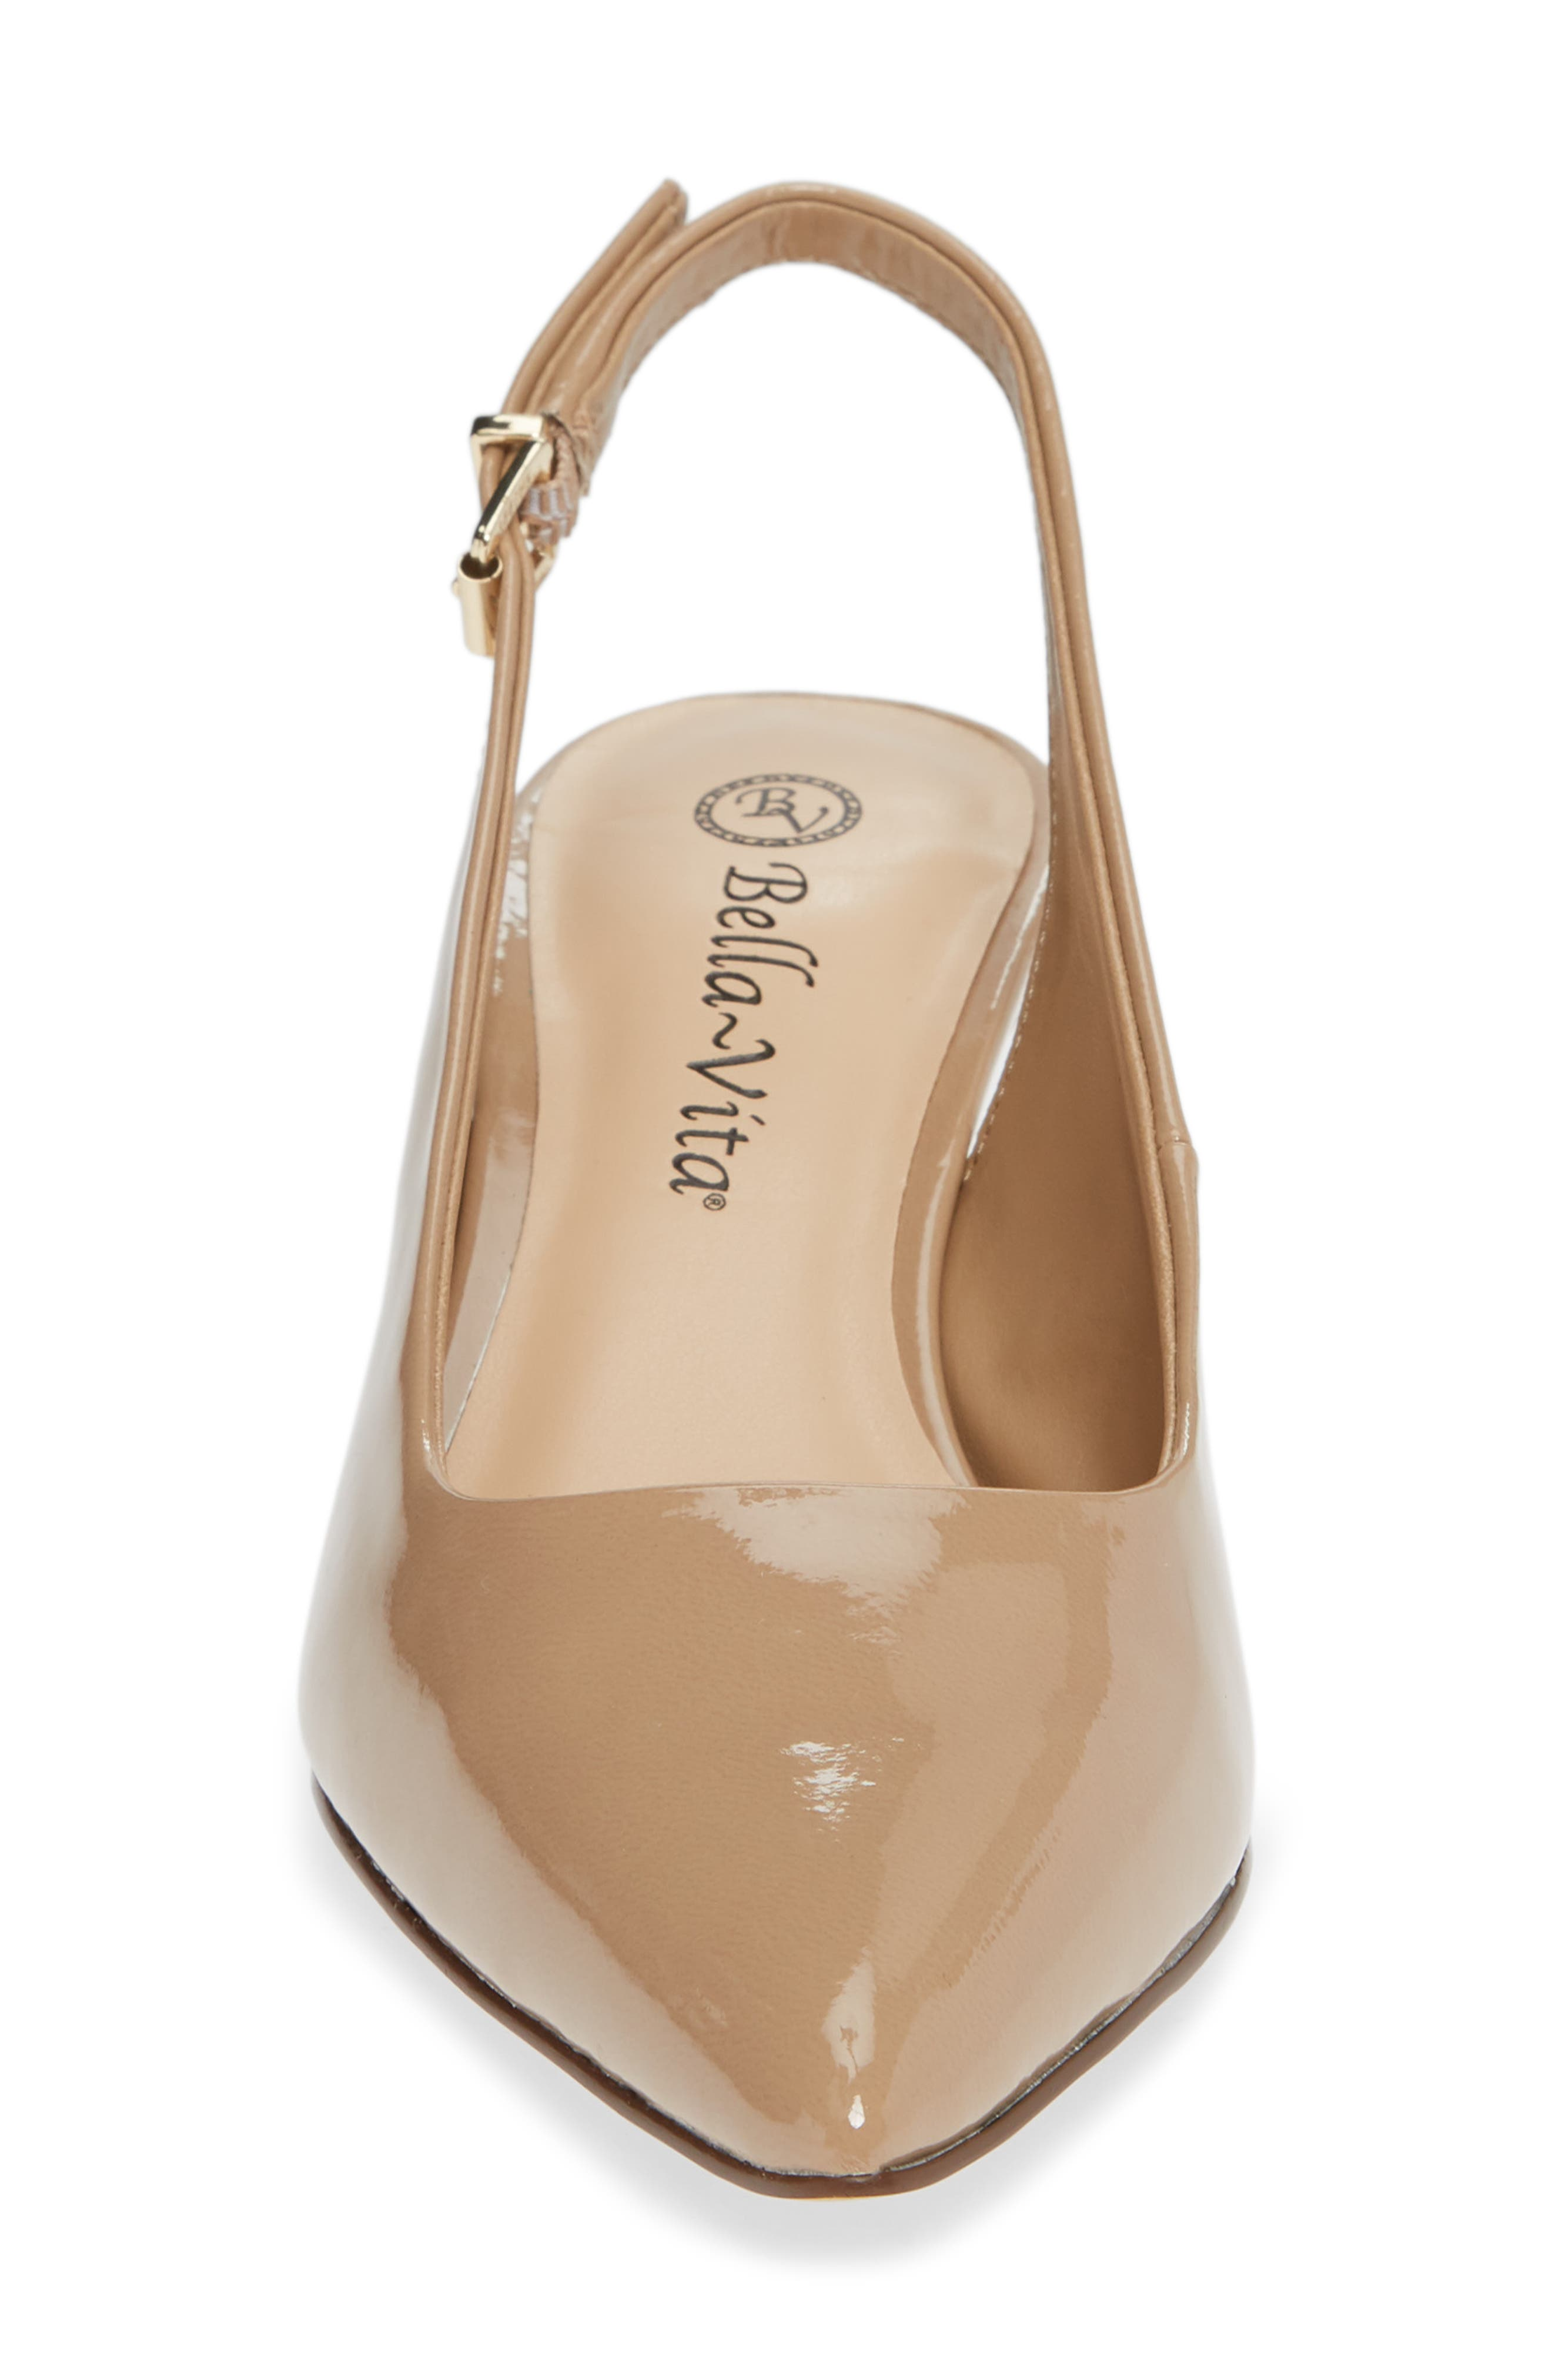 BELLA VITA, Scarlette Slingback Pump, Alternate thumbnail 4, color, NUDE PATENT